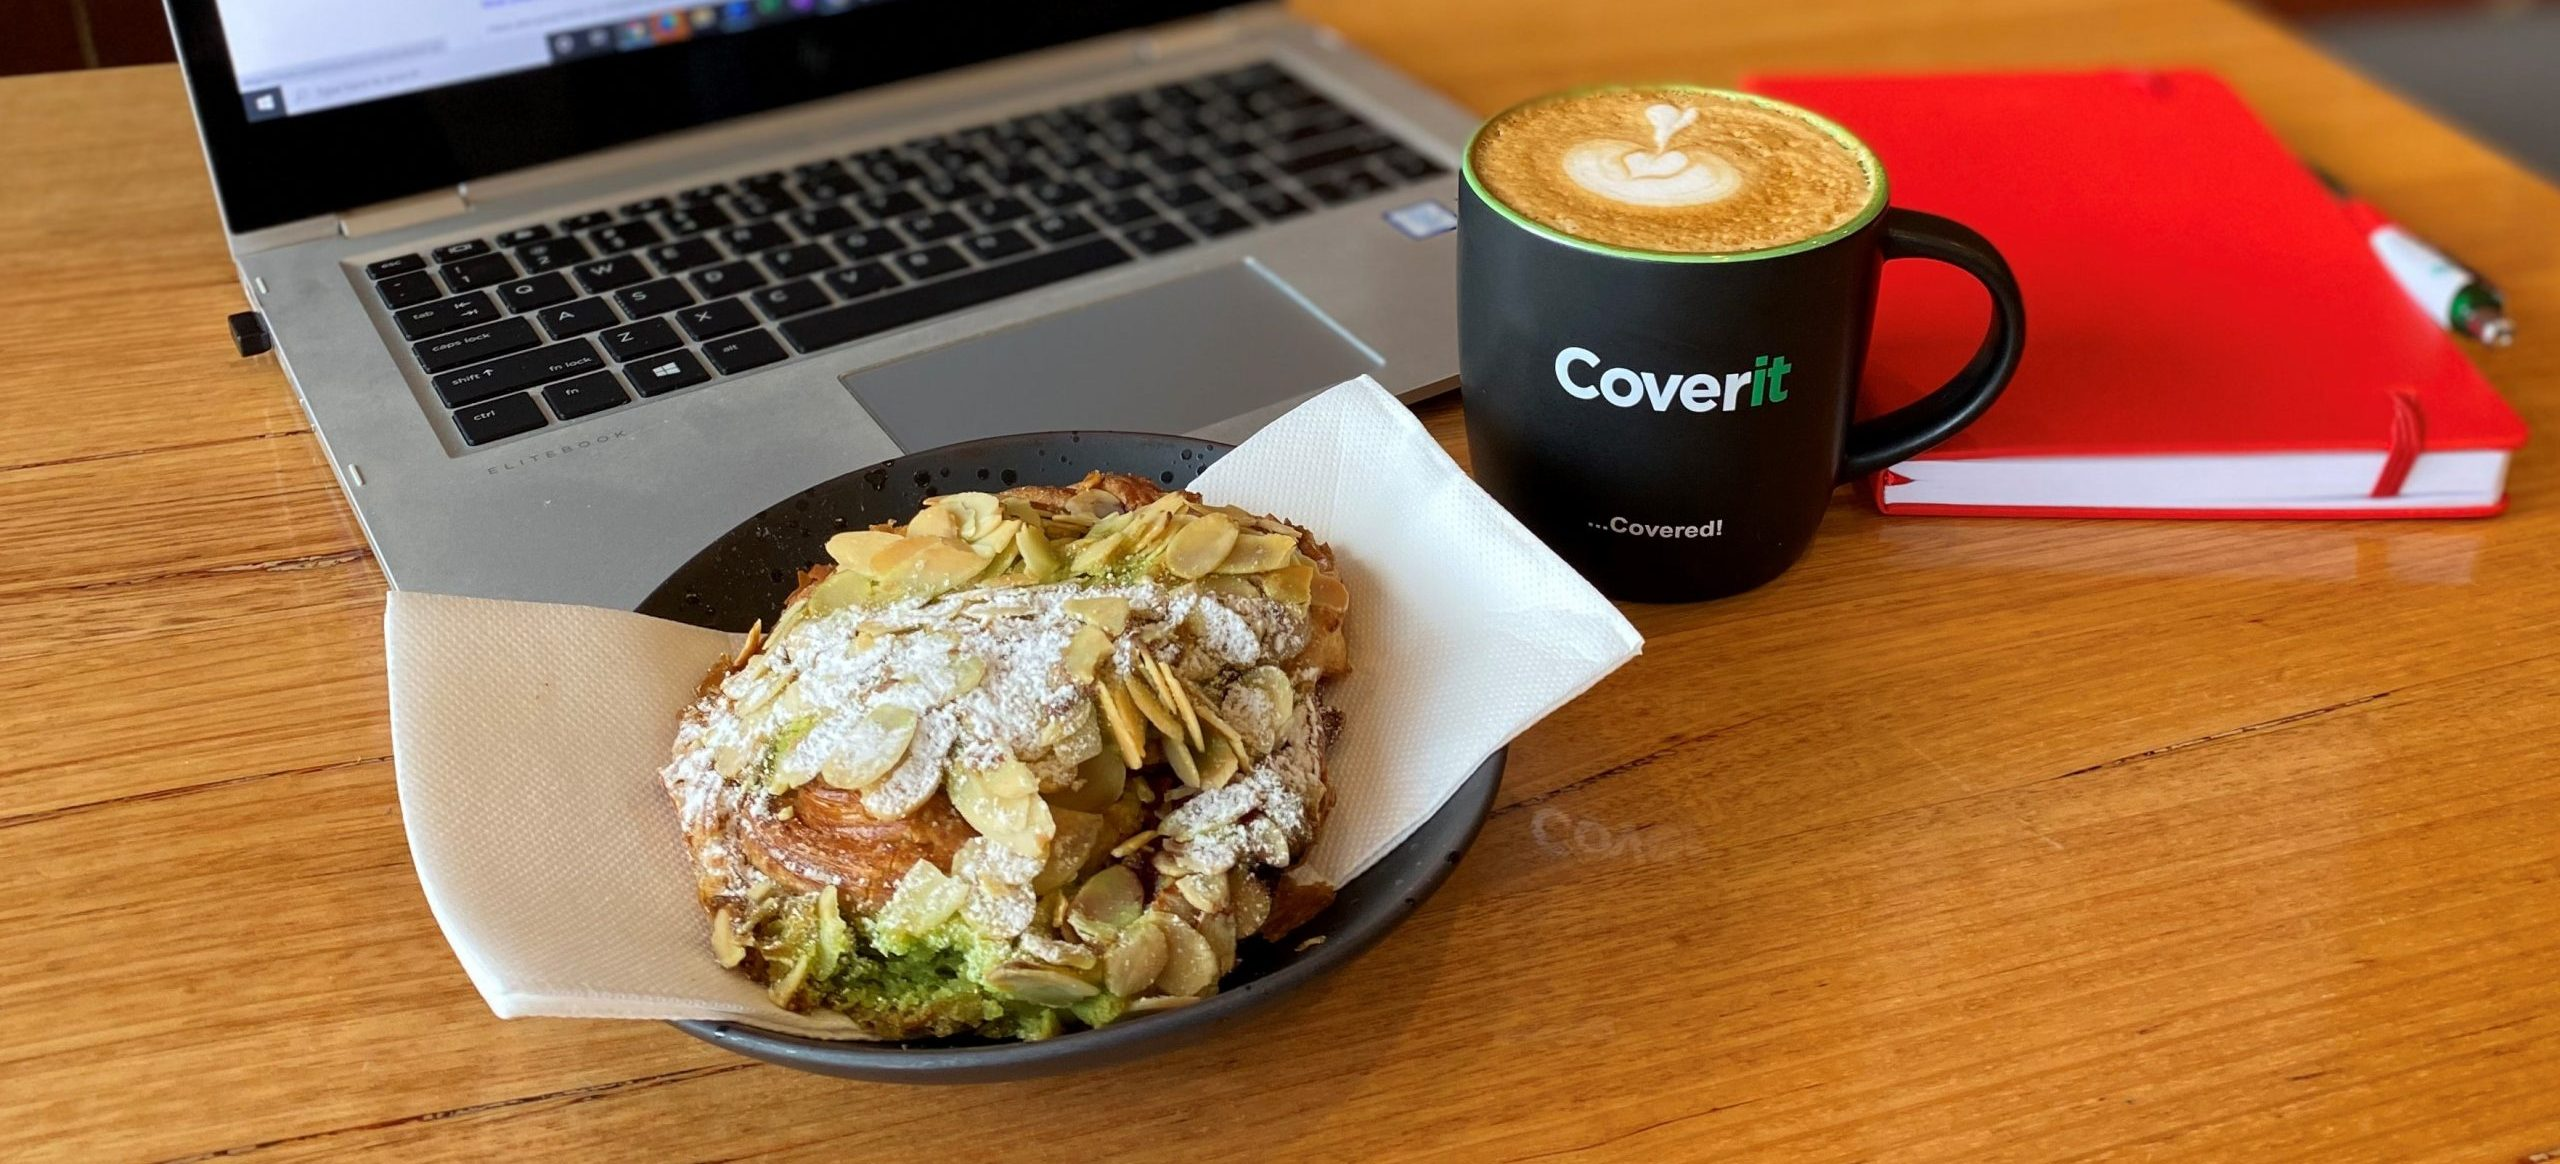 CoverIt Personal Cyber Protection Insurance Coffee Mug